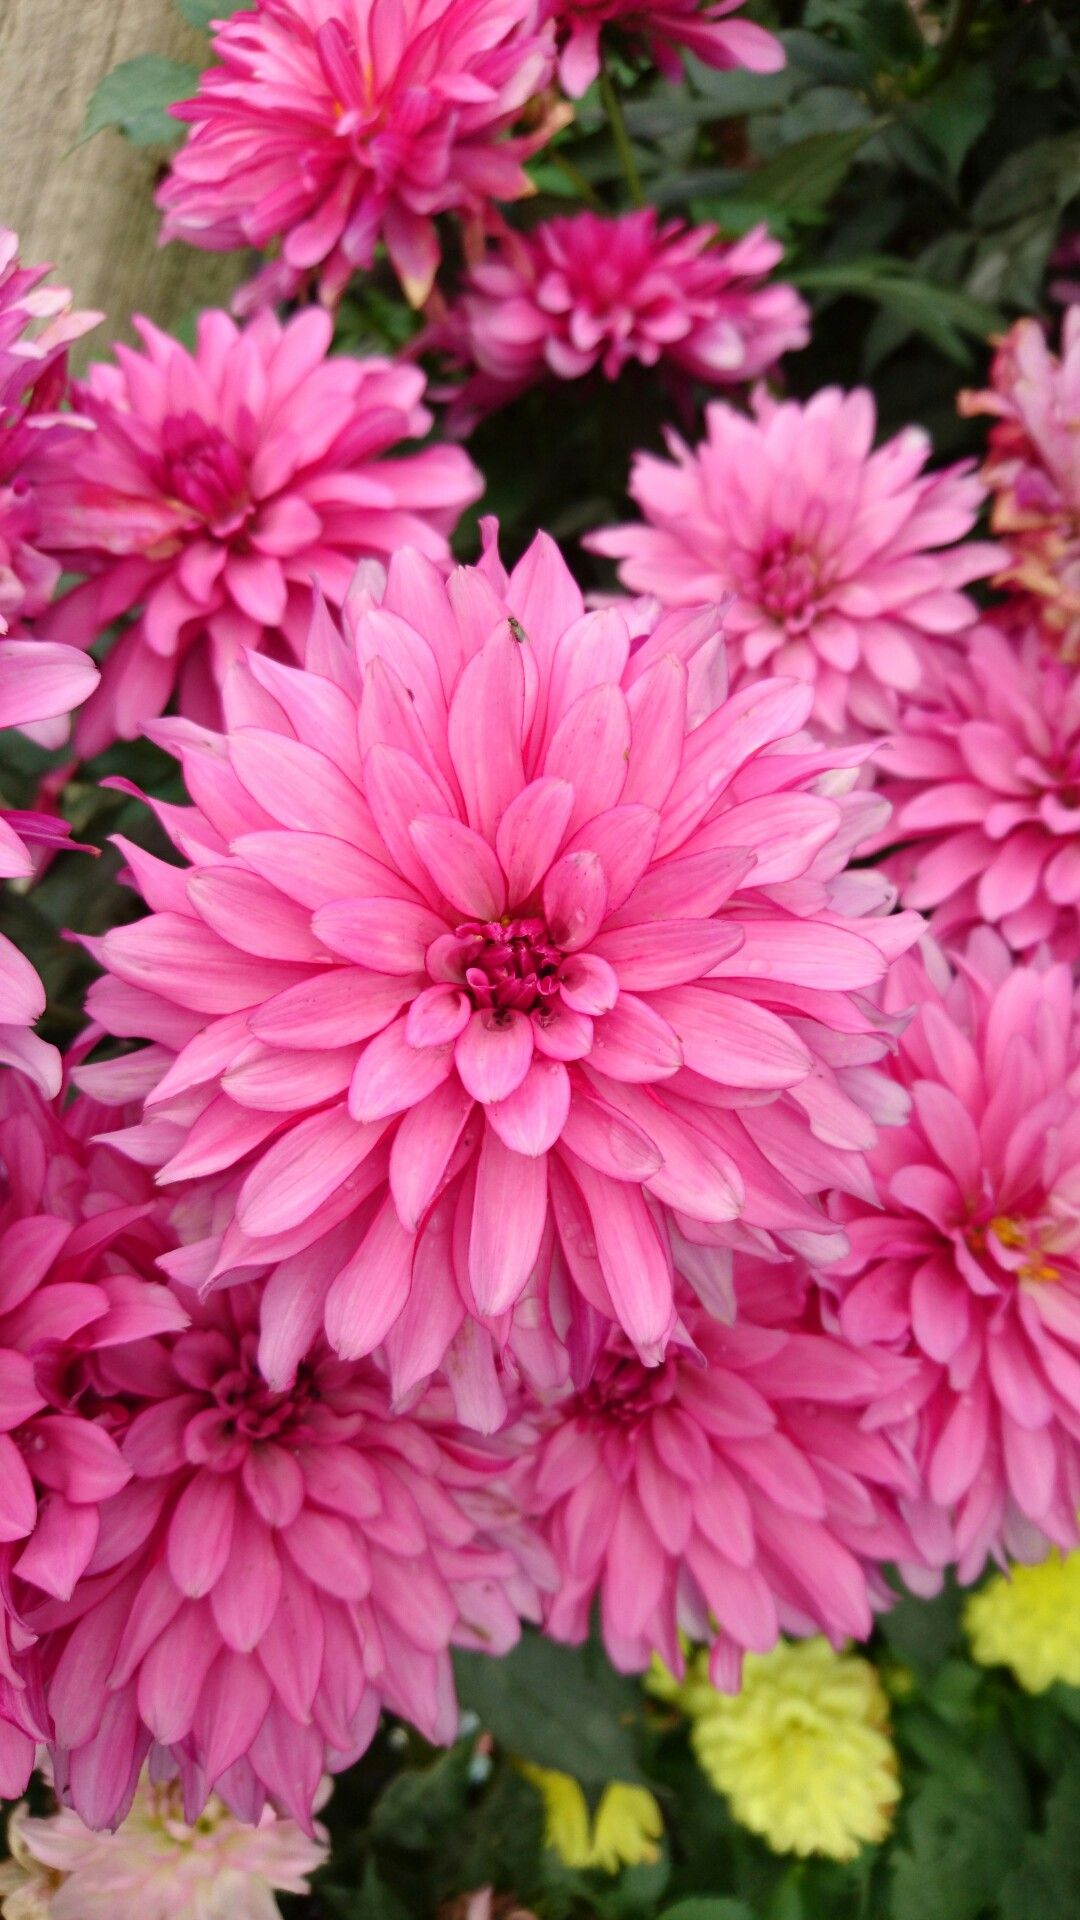 Pin By Helena Santander On Flowers Pinterest Flowers Dahlia And